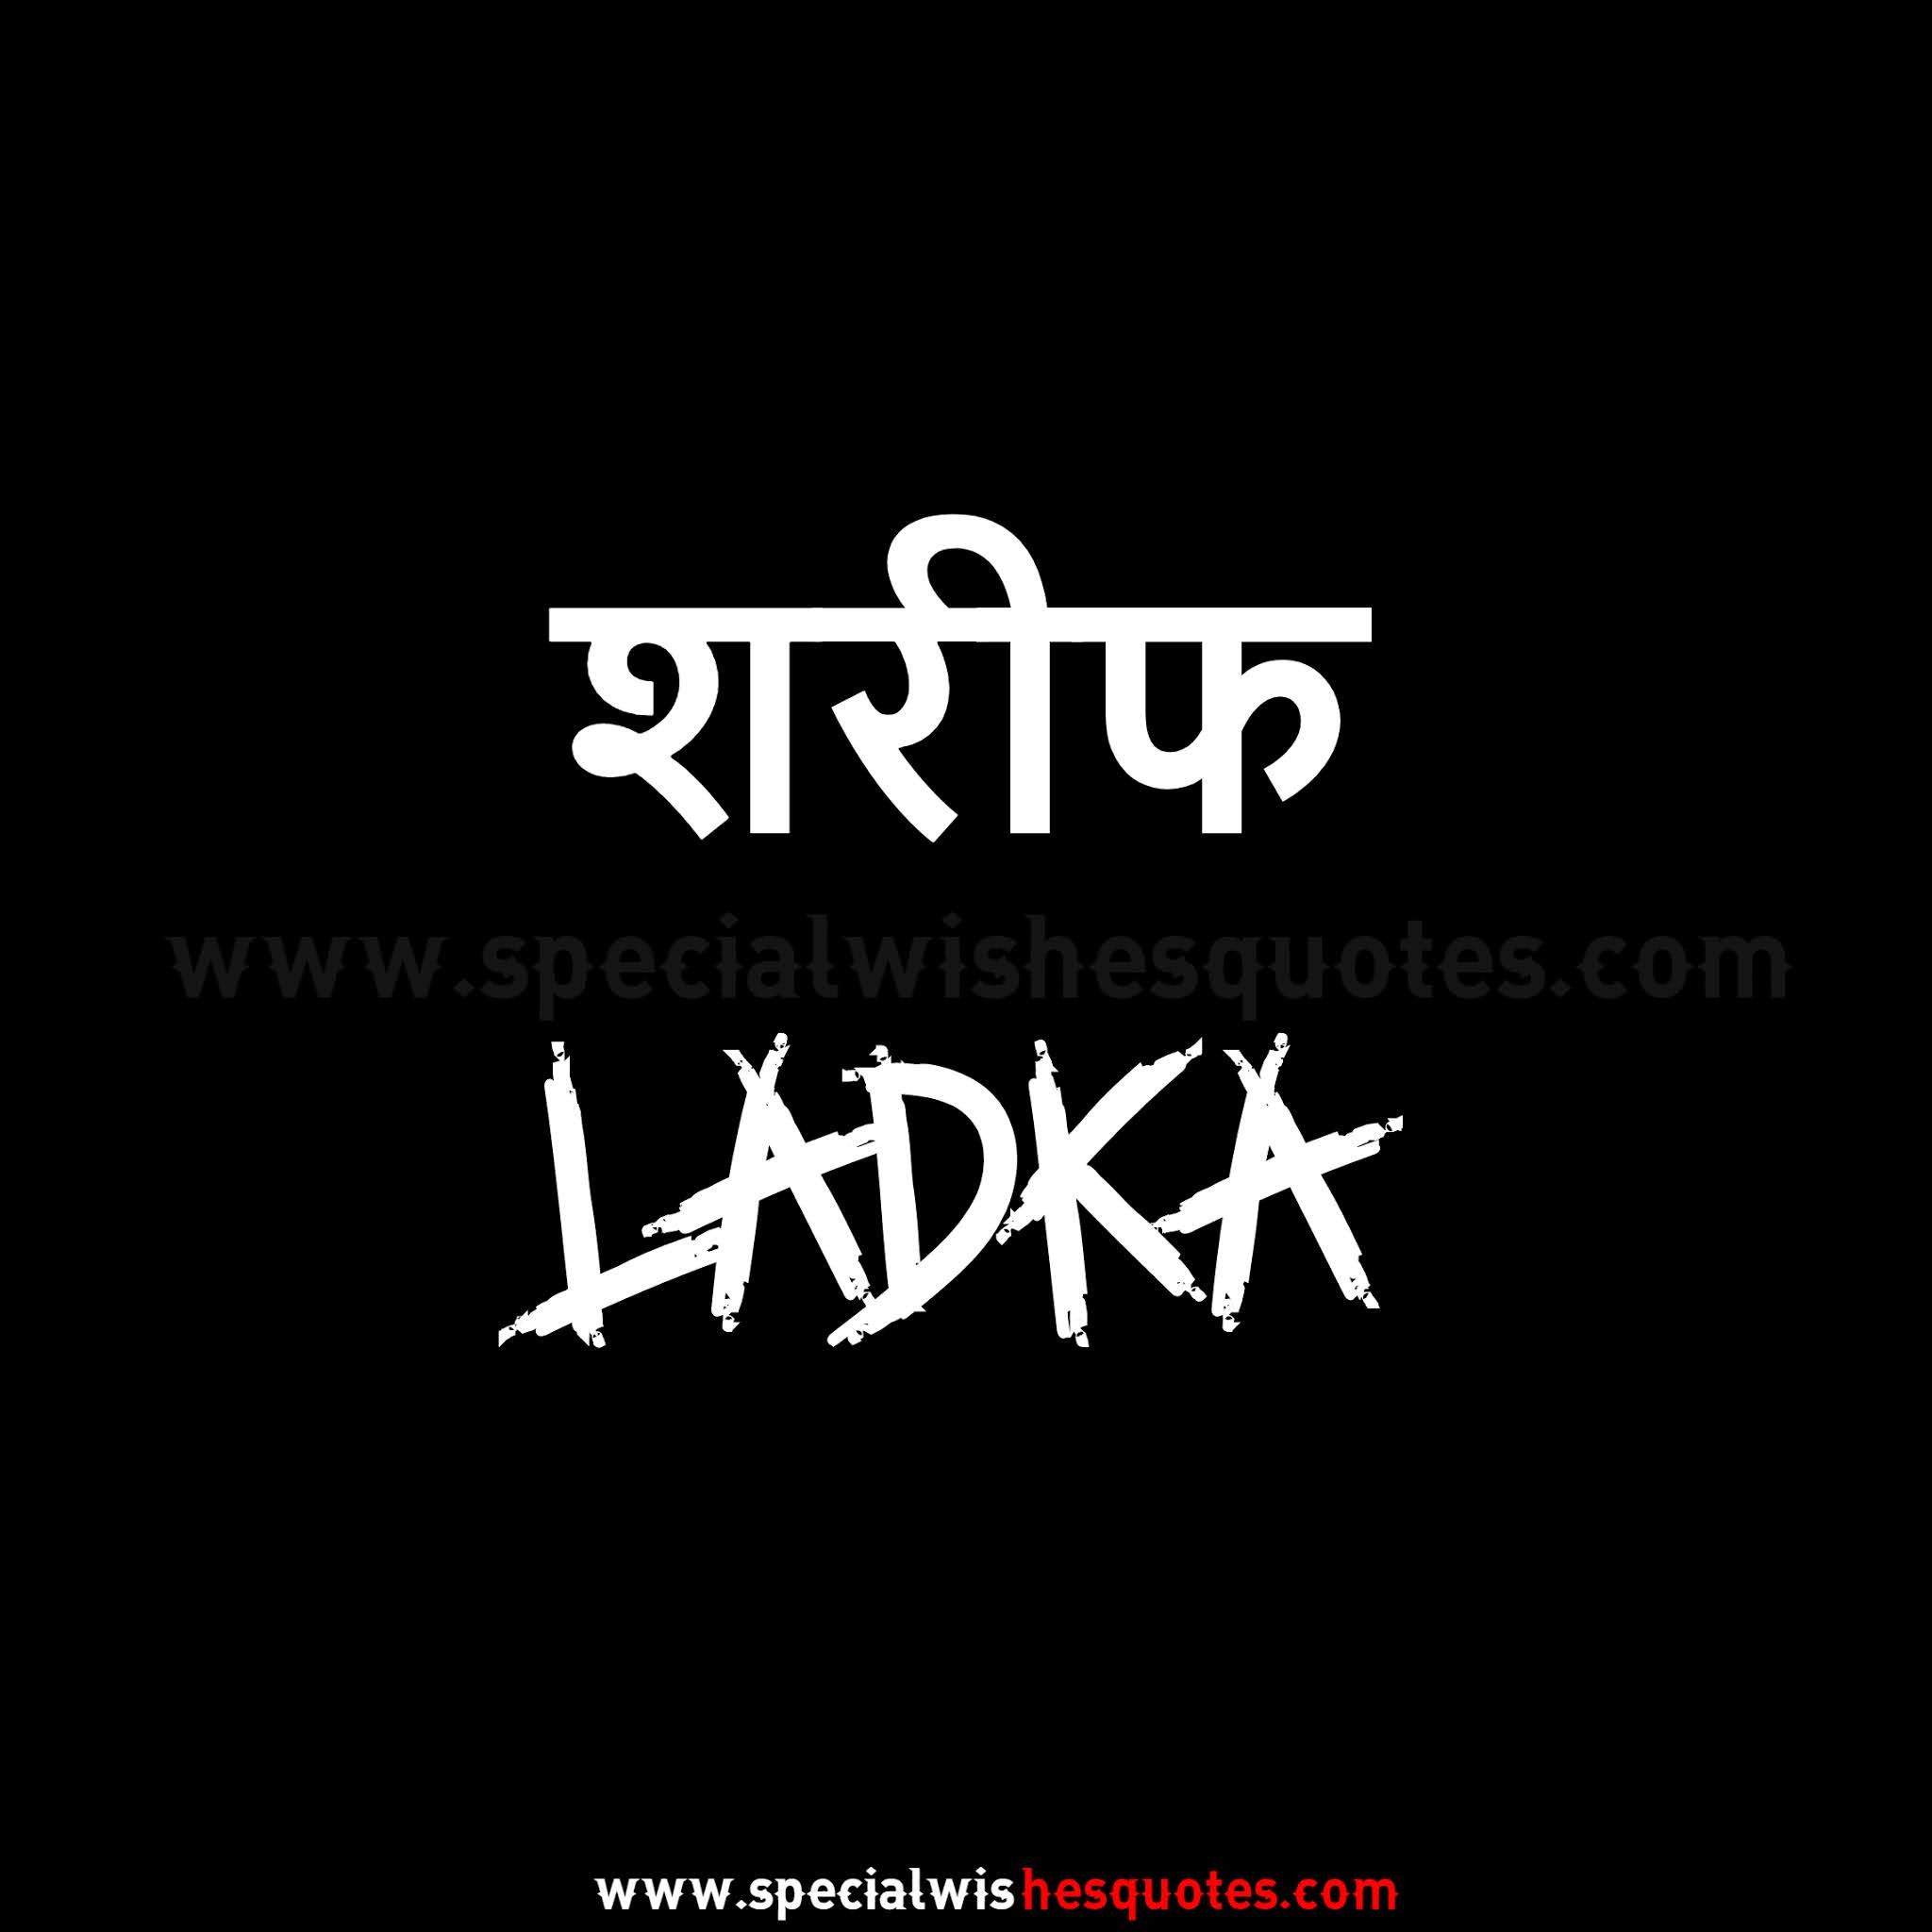 'Awesome attitude dp for shareef Ladka'